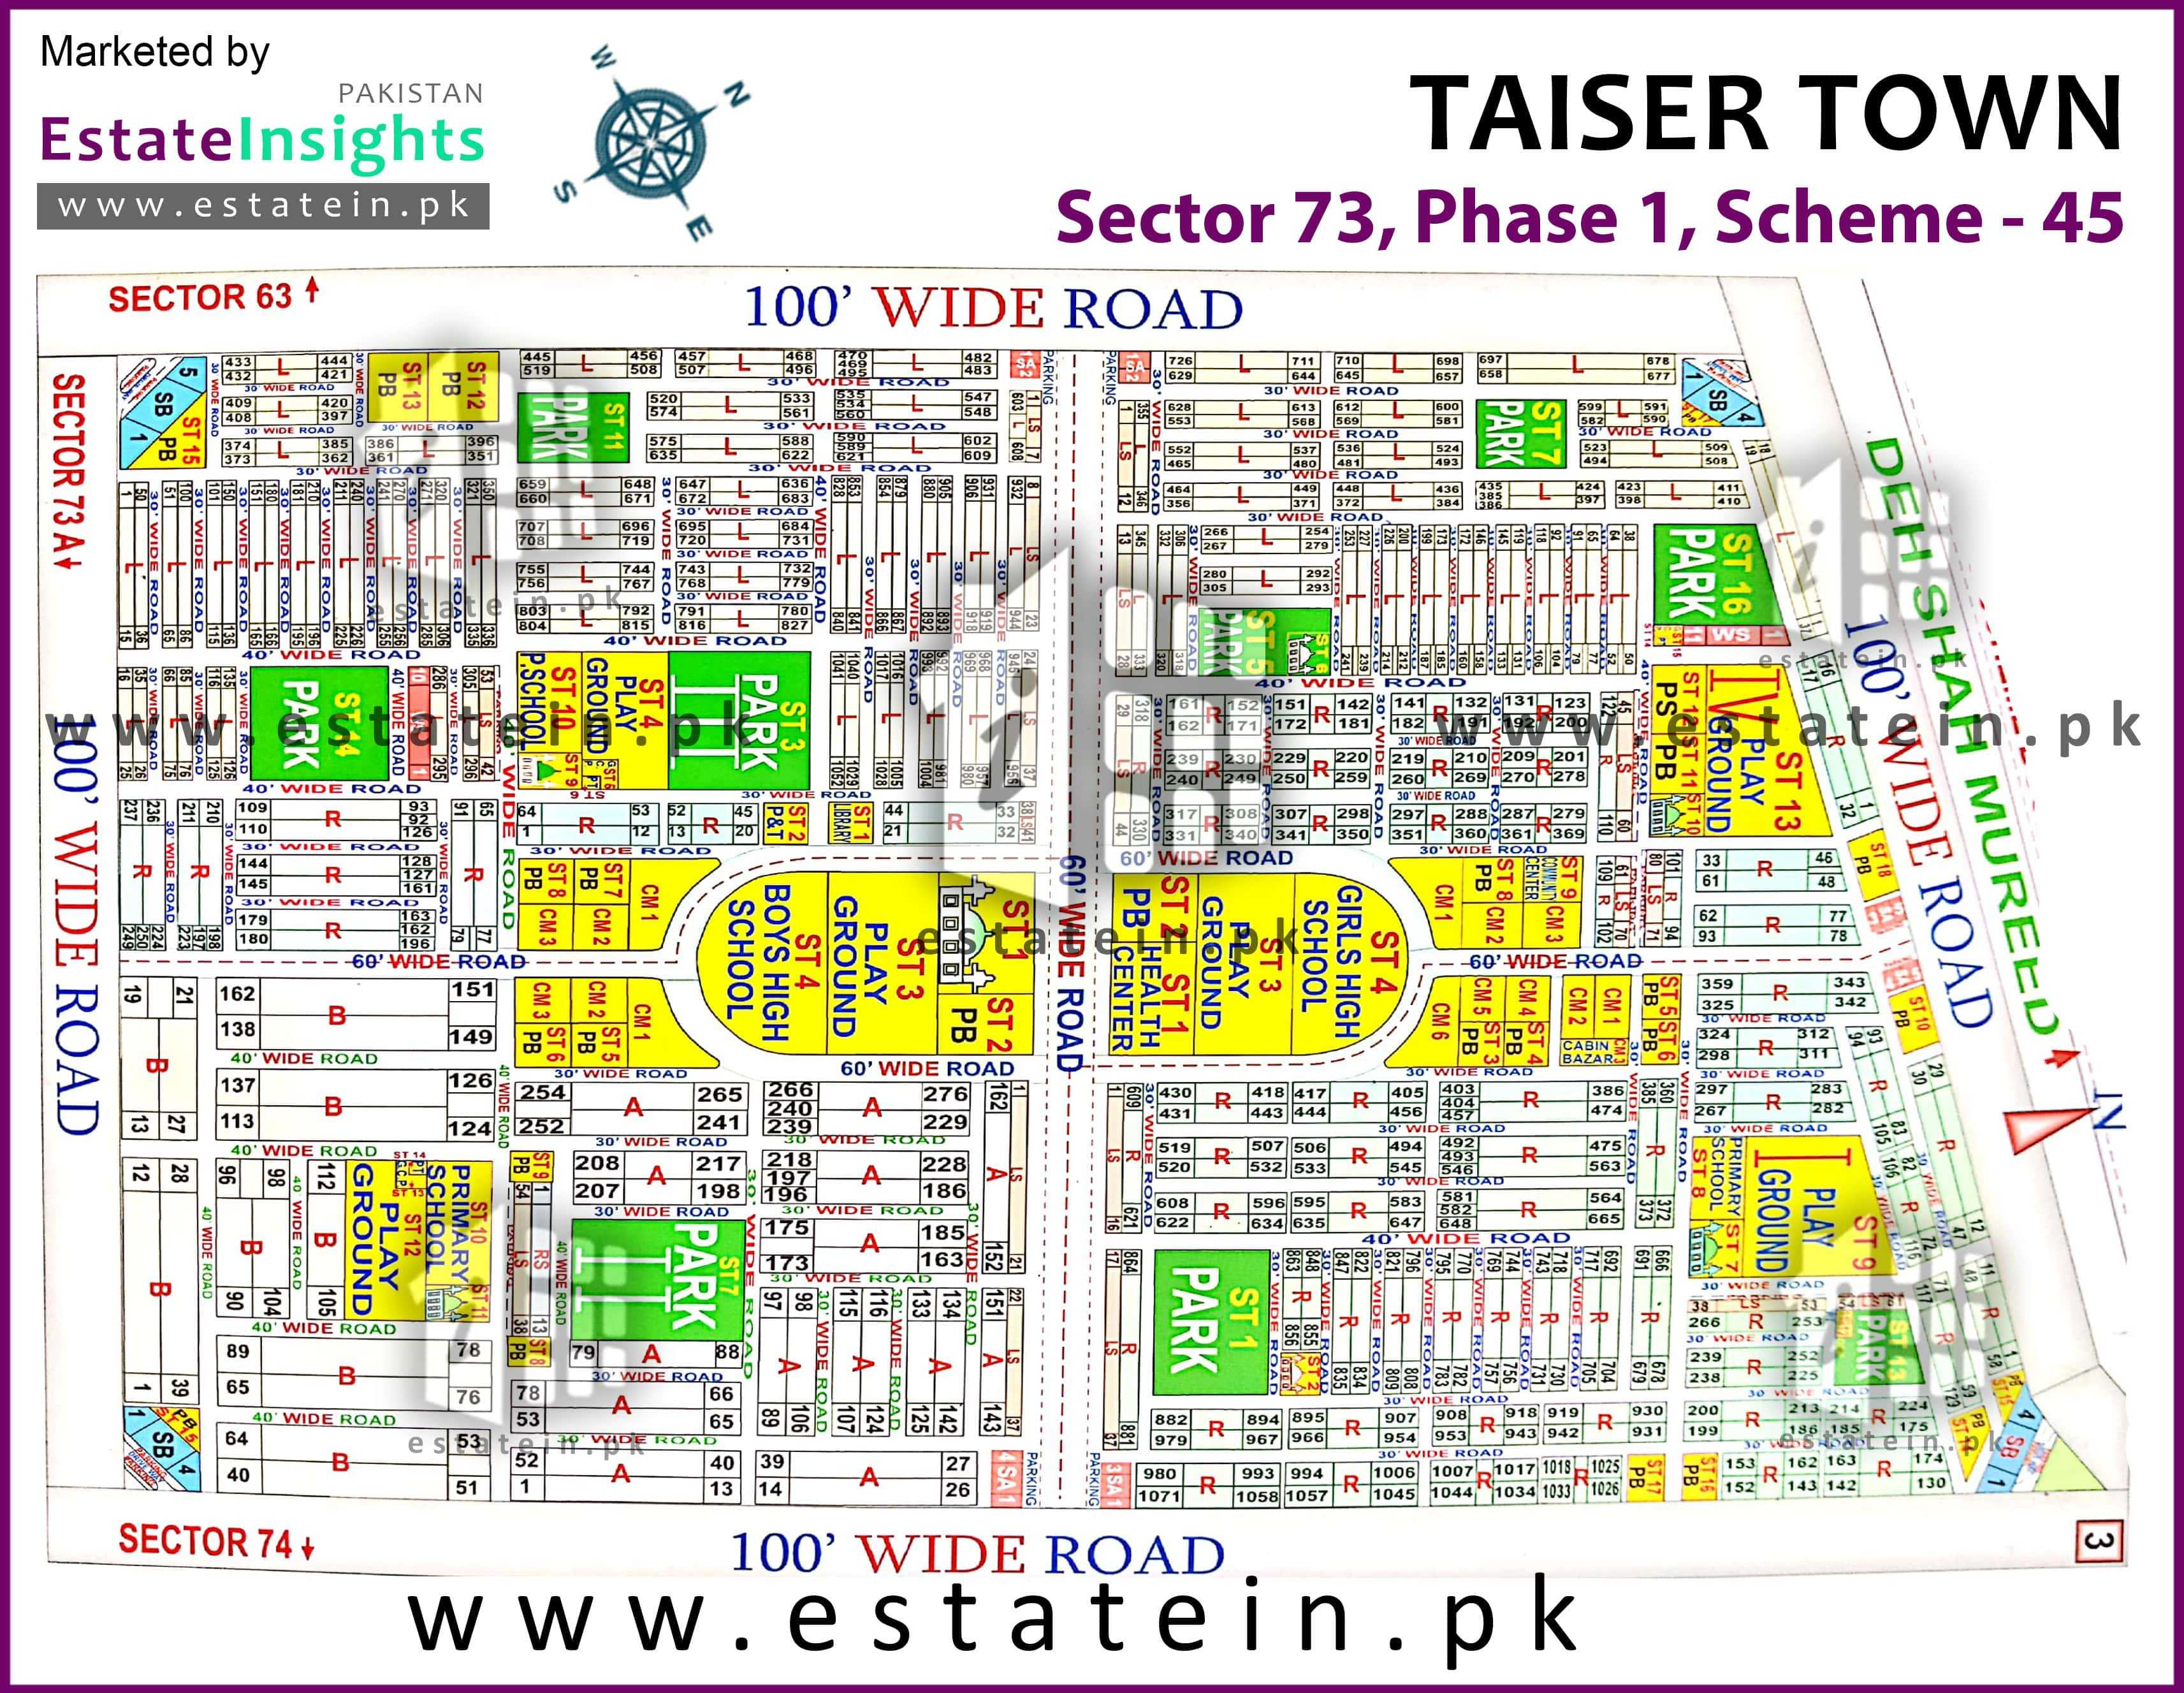 Site Plan of Sector 73 of Taiser Town Phase I